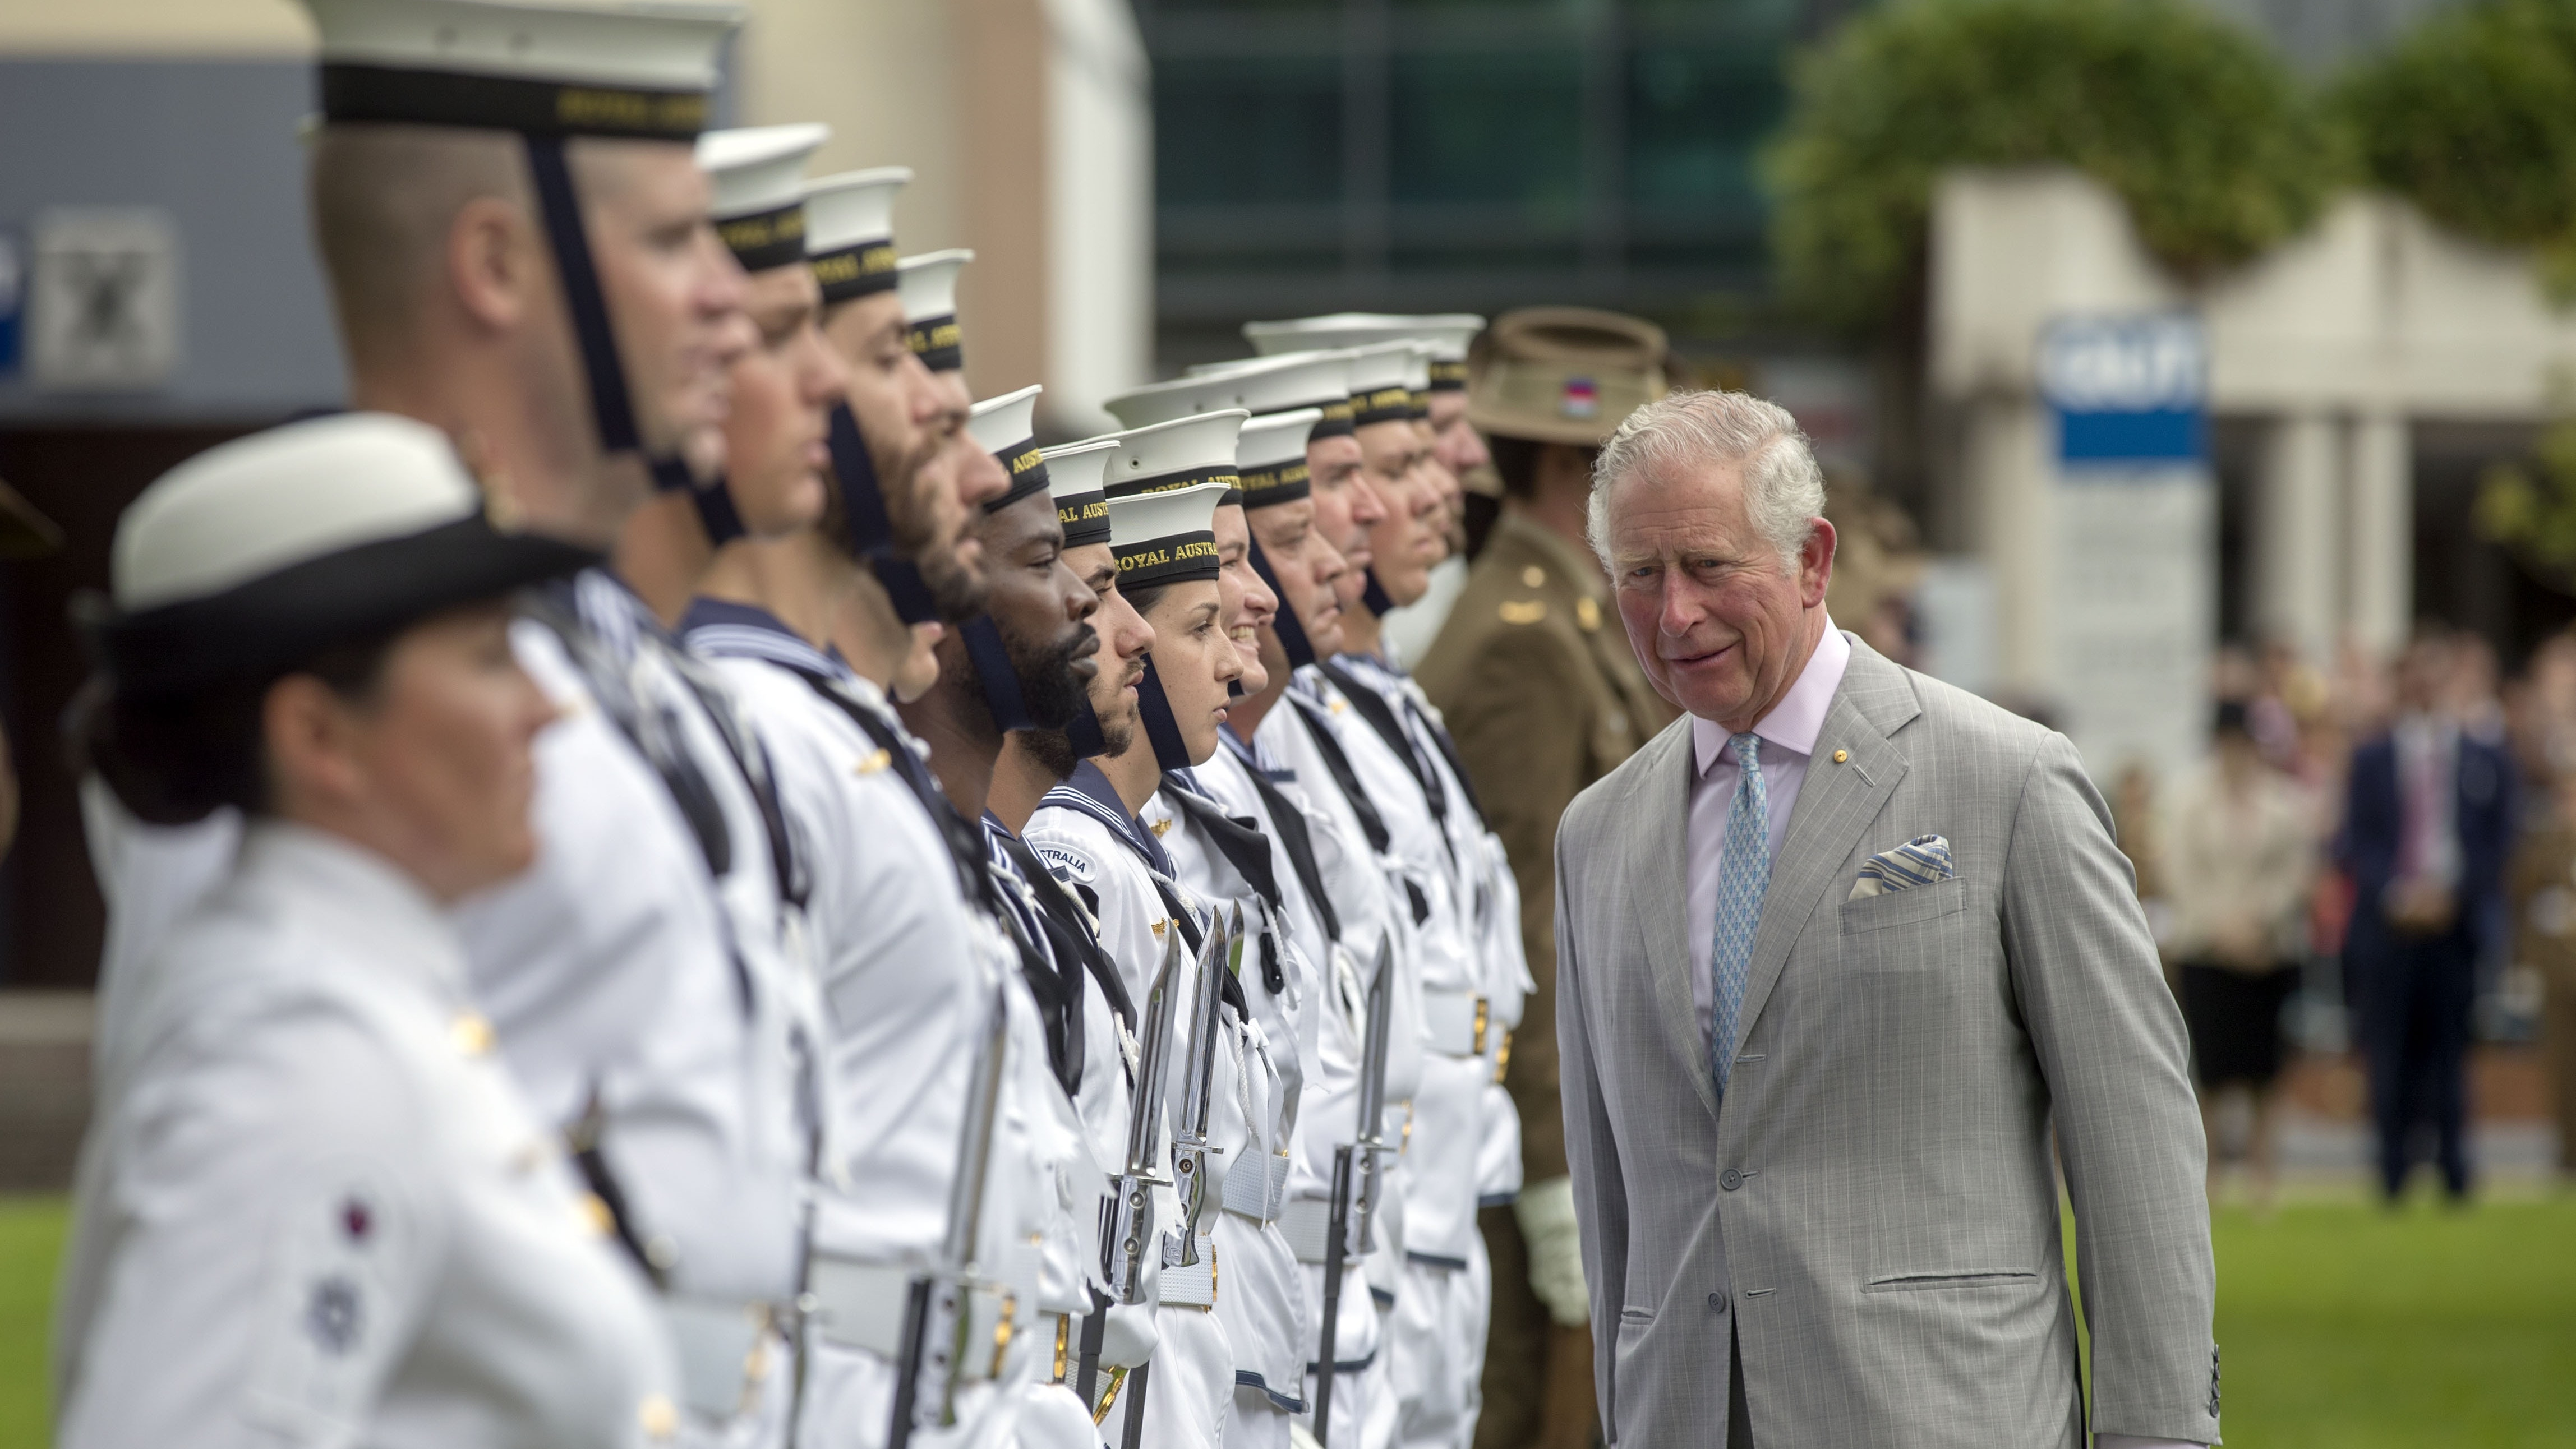 Charles and Camilla welcomed at Brisbane before Prince opens Commonwealth Games tonight